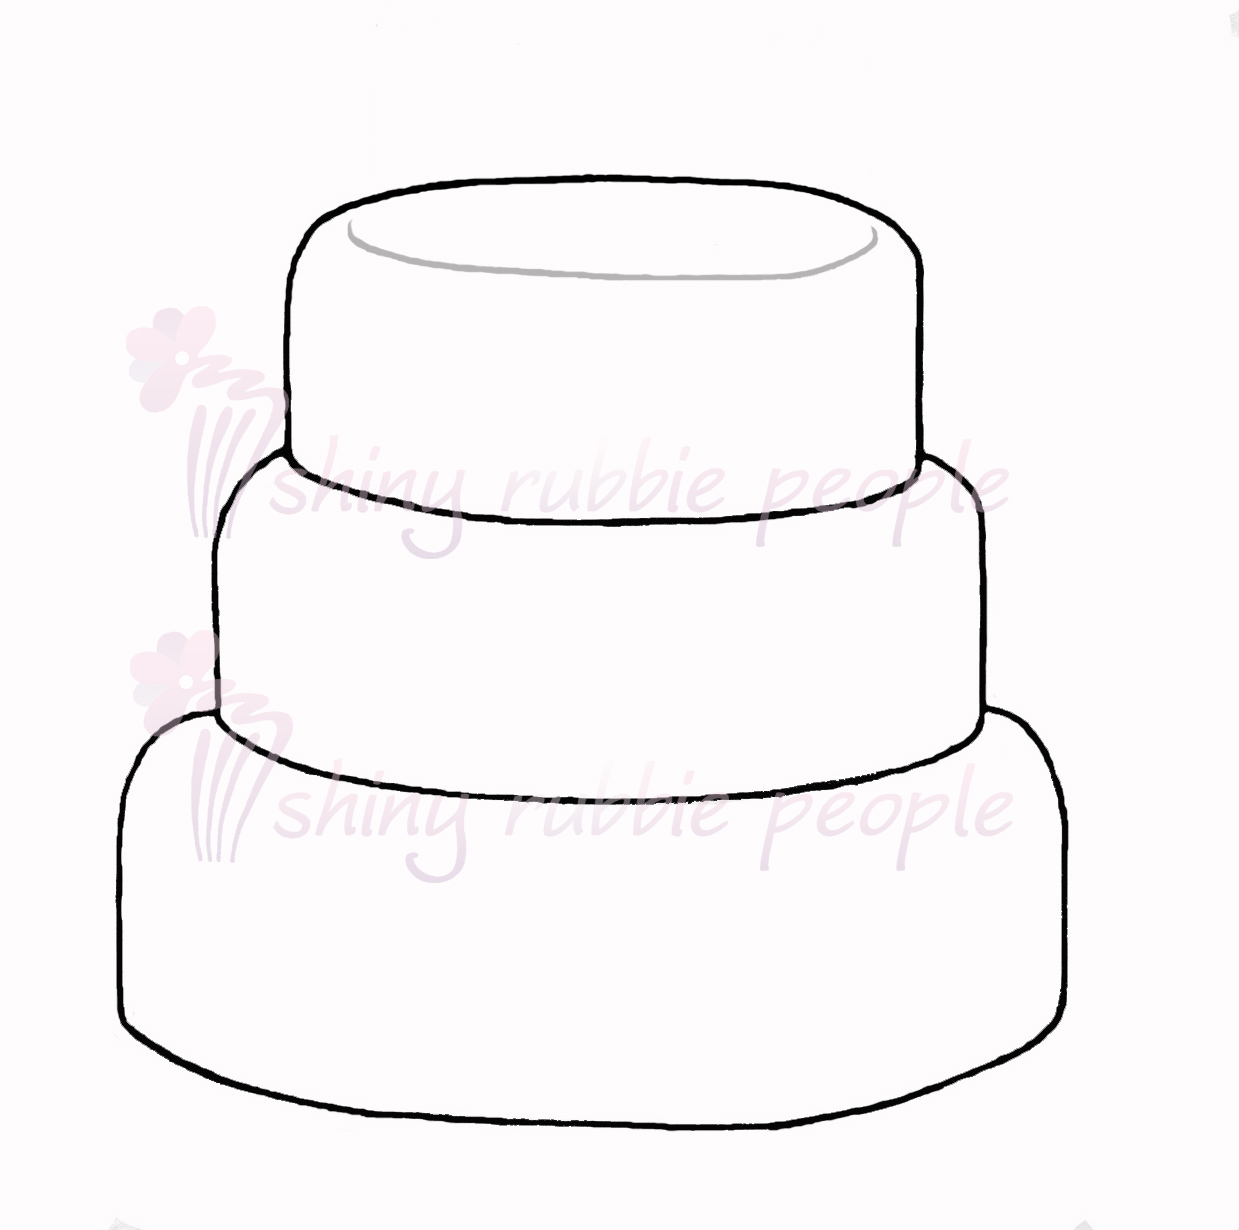 4 tiered cake clipart clip art transparent library Tiered Cake Clipart | Free download best Tiered Cake Clipart on ... clip art transparent library